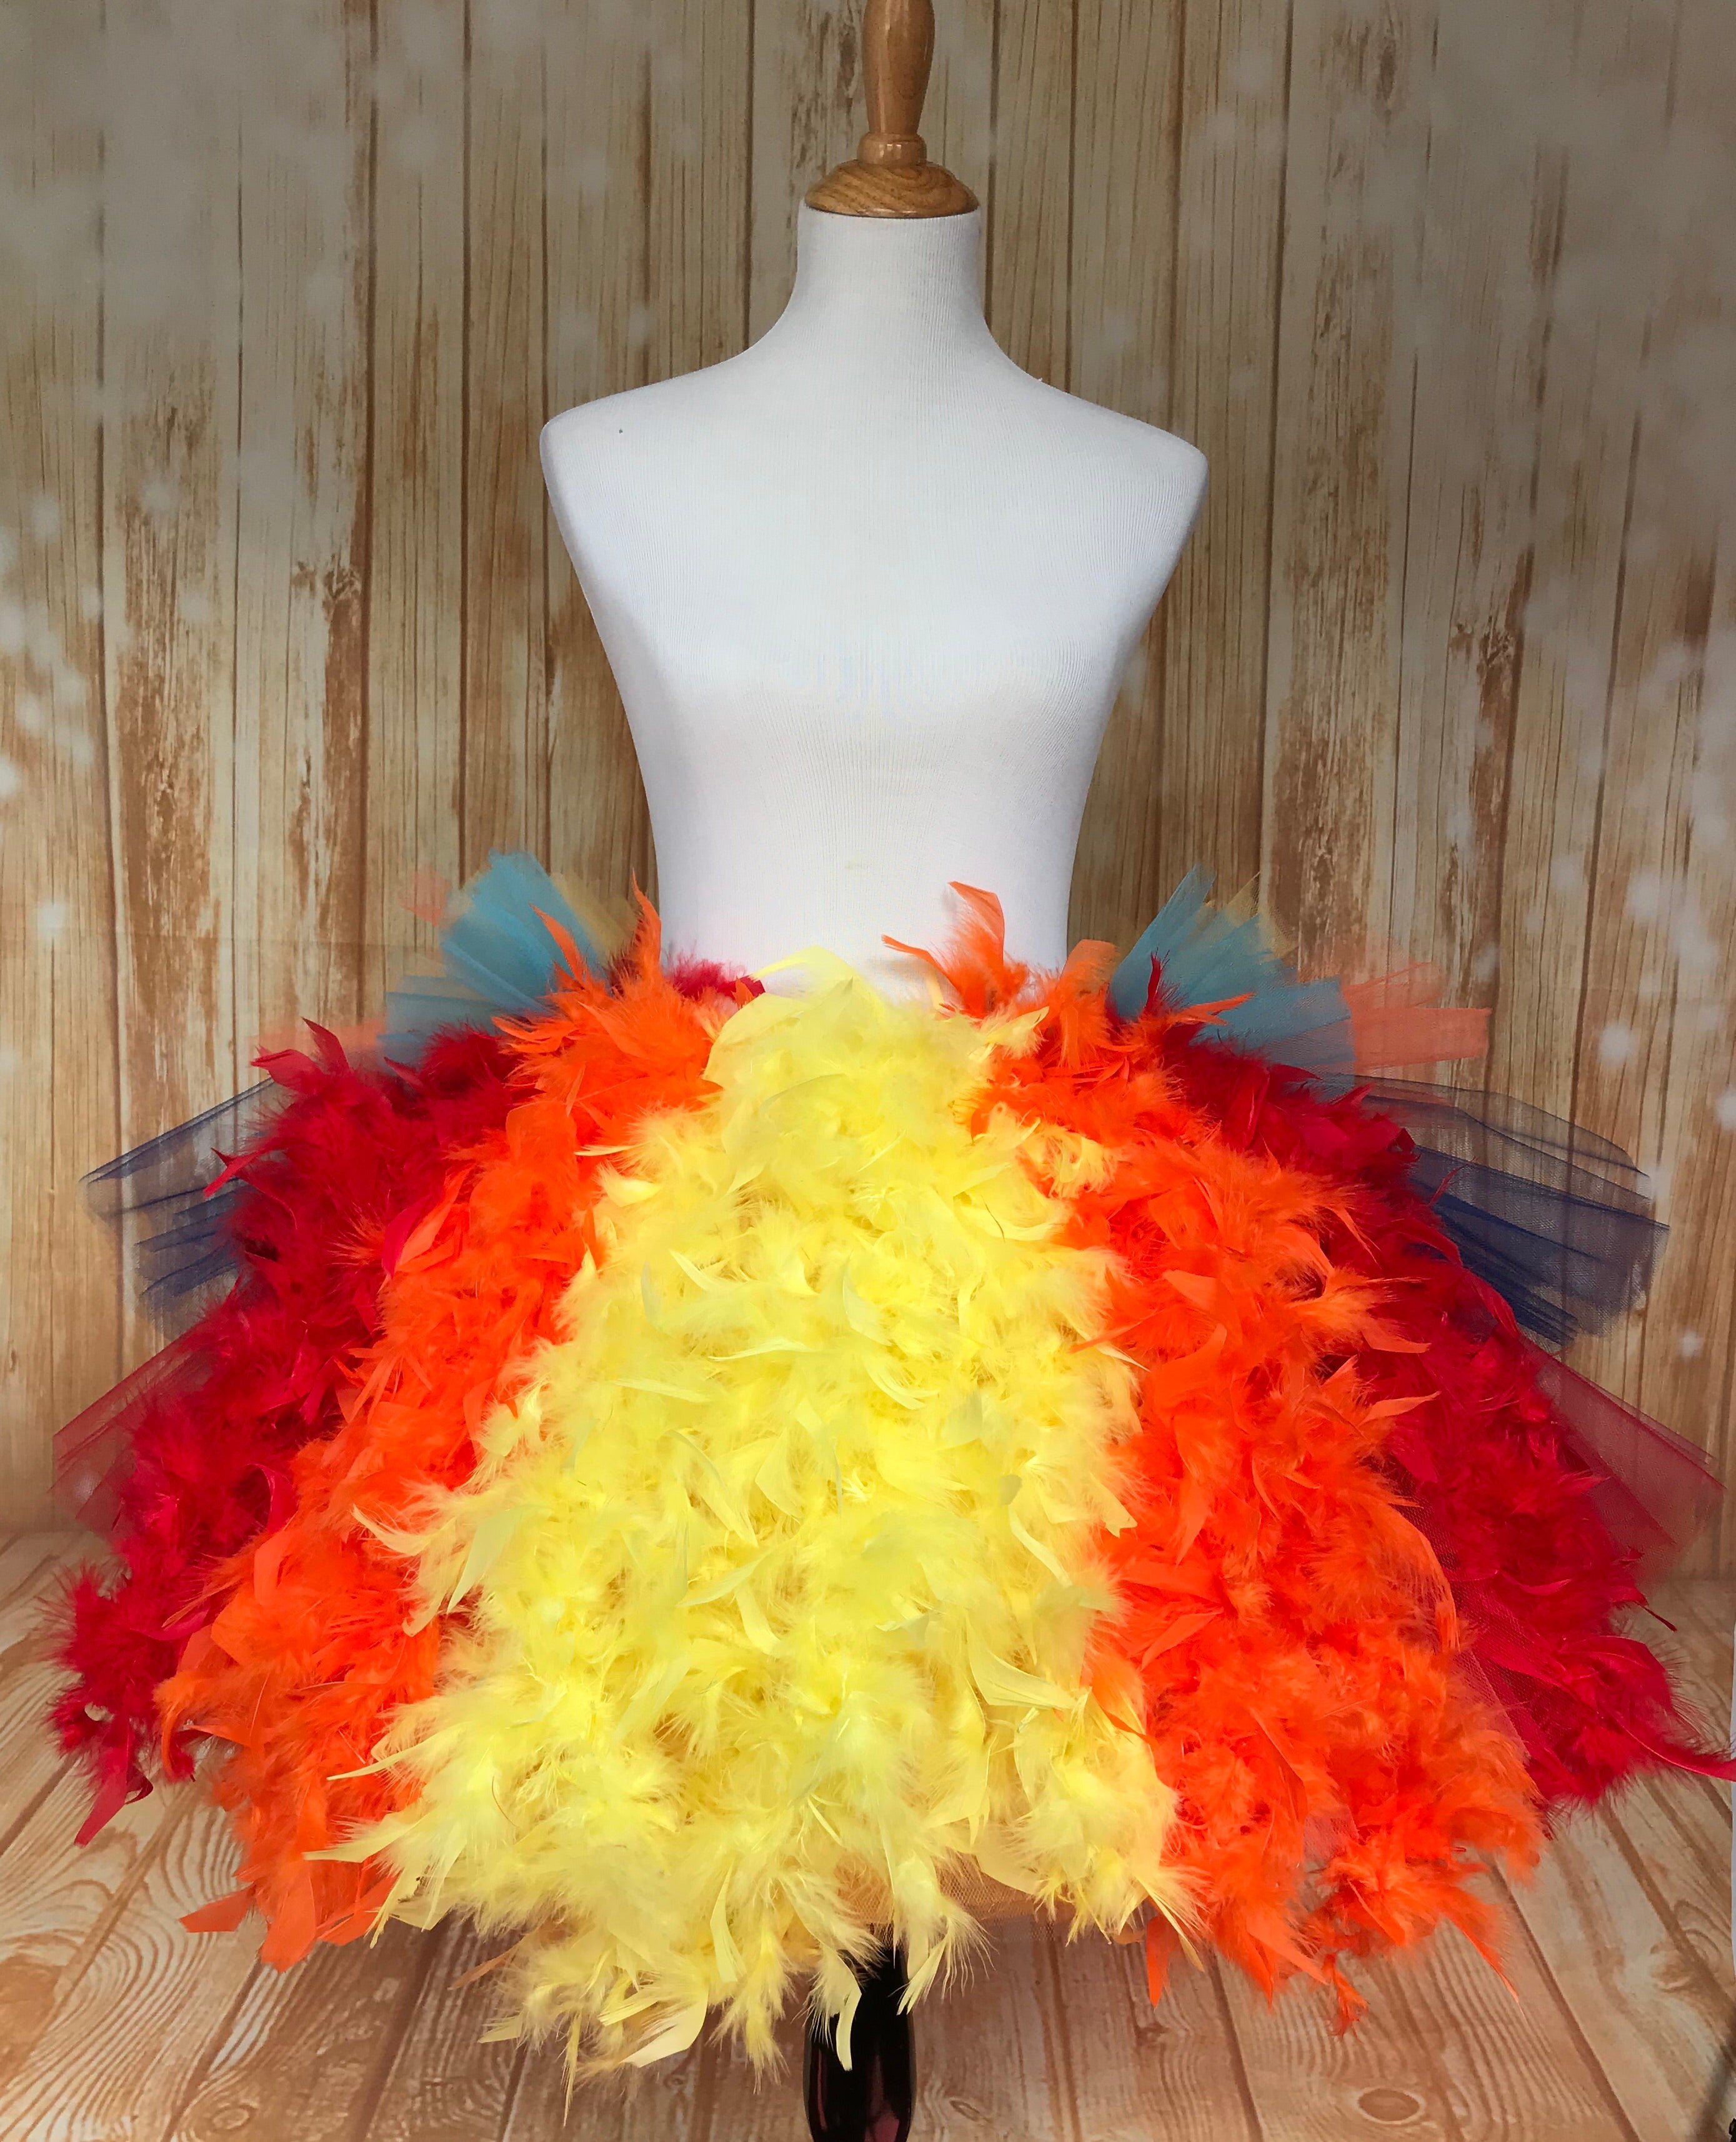 Kevin Up Women's Disney Marathon Tutu Skirt with Feathers